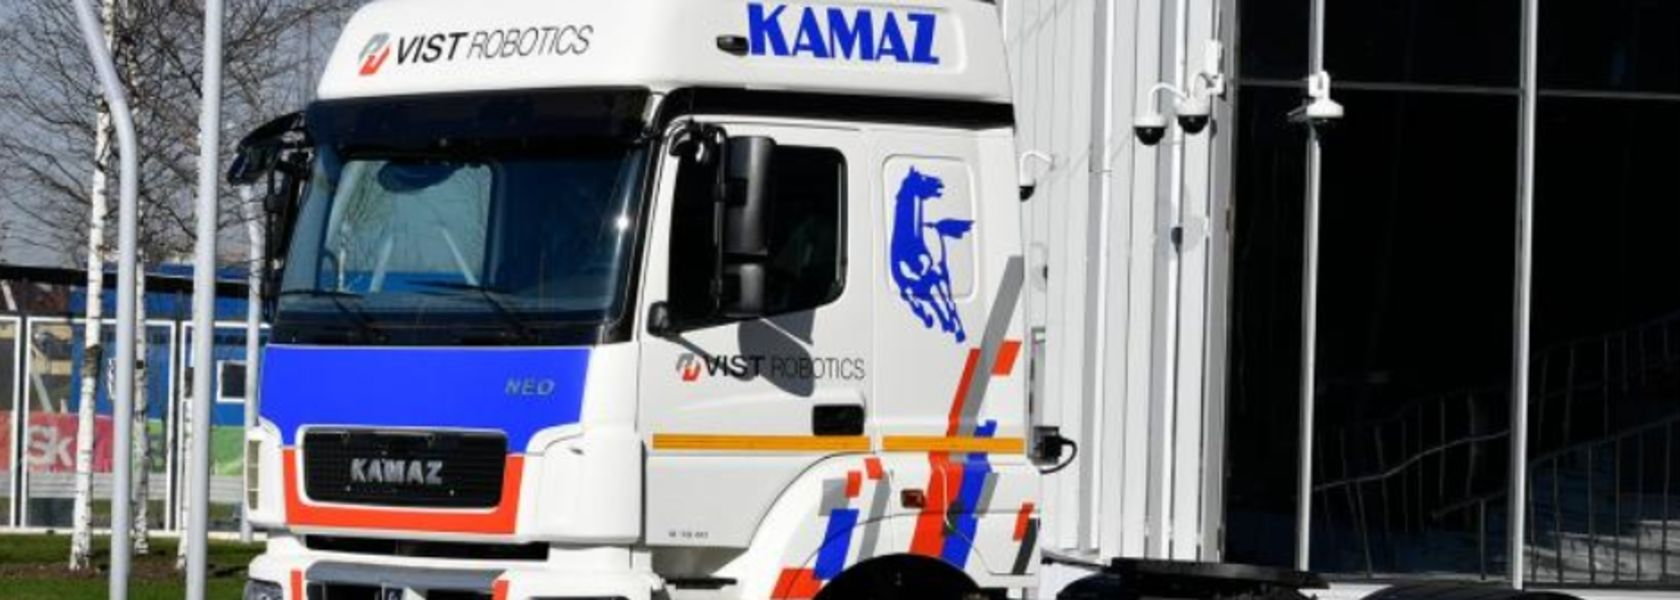 VIST, Kamaz host competition for autonomous solution